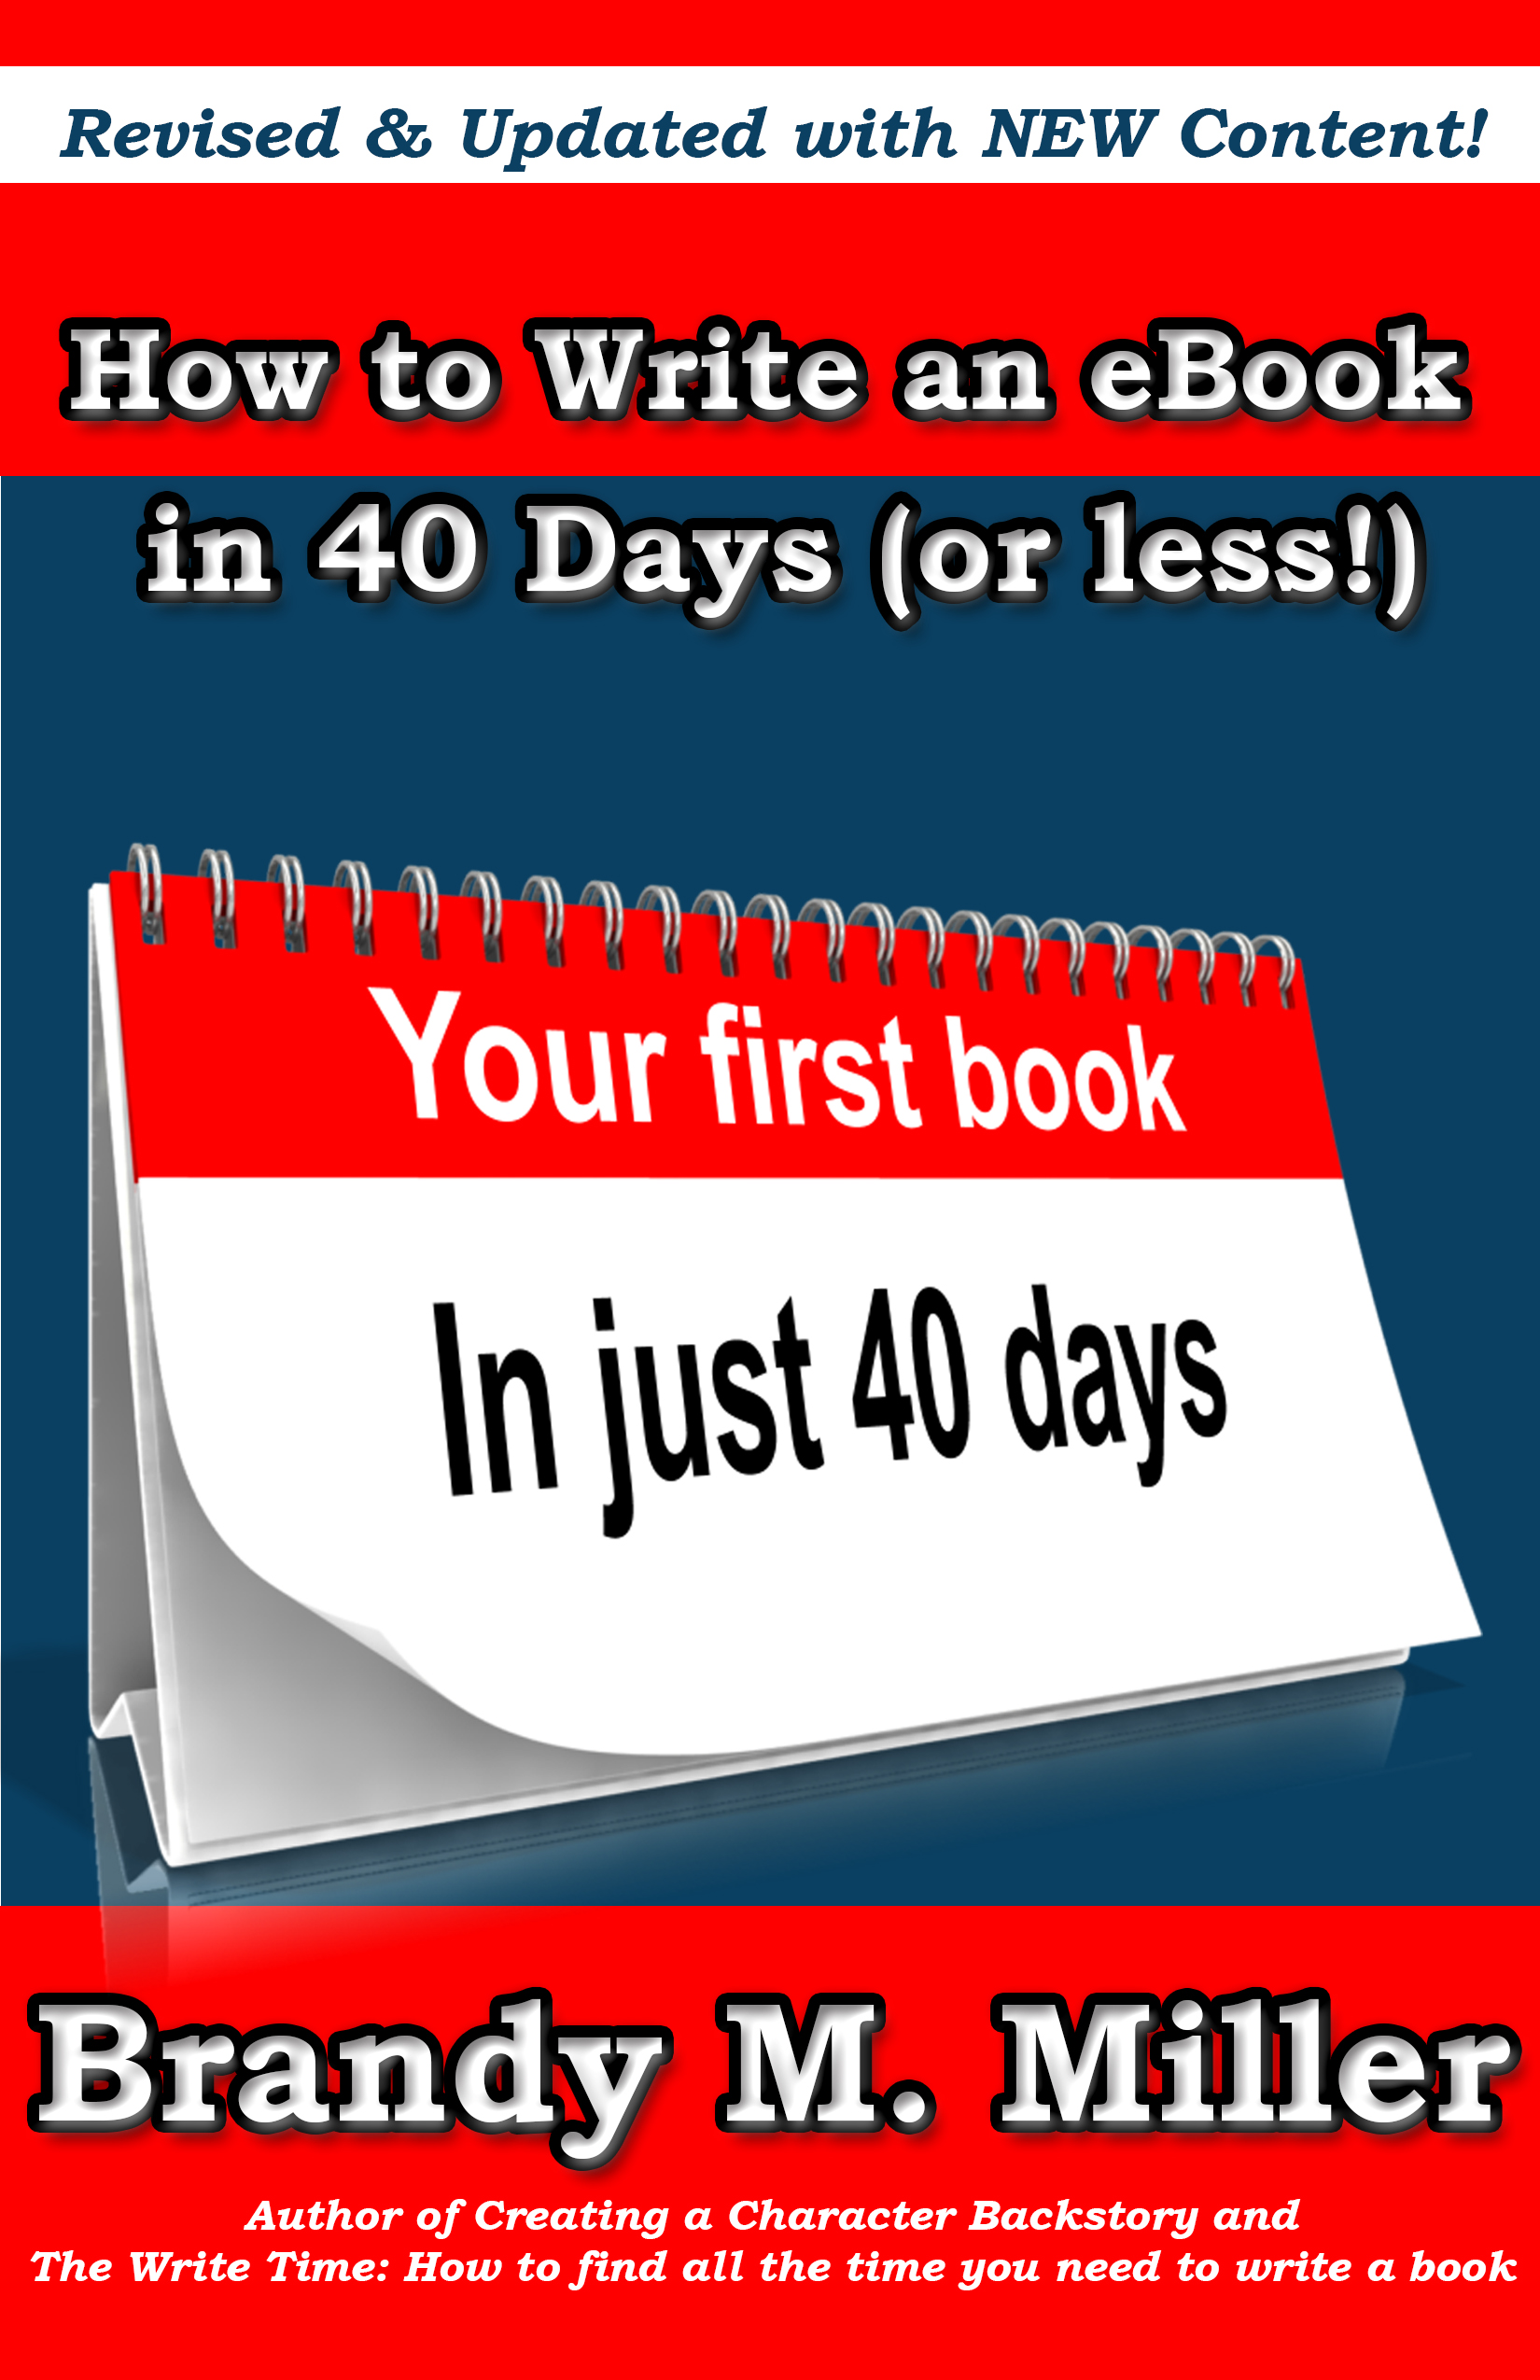 The Revised & Updated How to Write an eBook in 40 Days (or less)